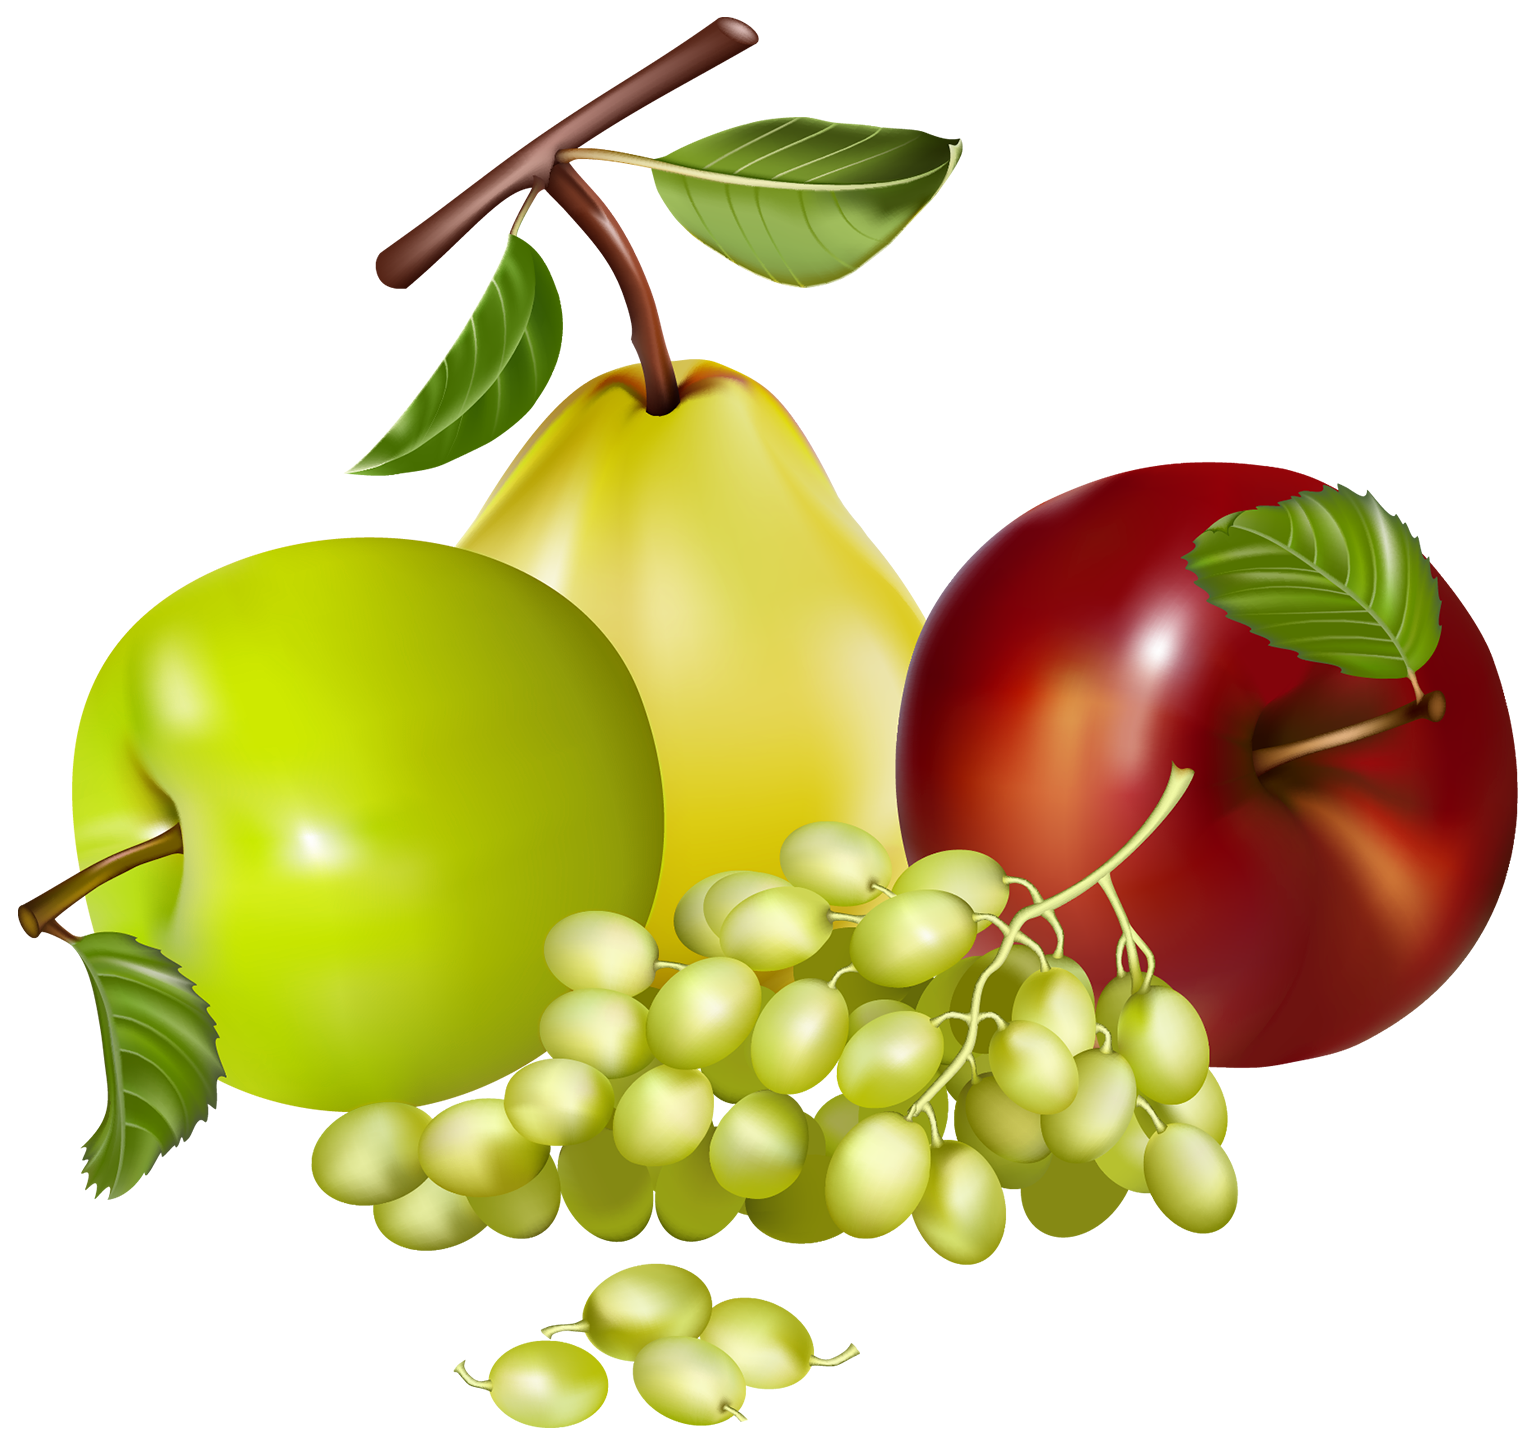 Fruit png. Mixed fruits clipart best